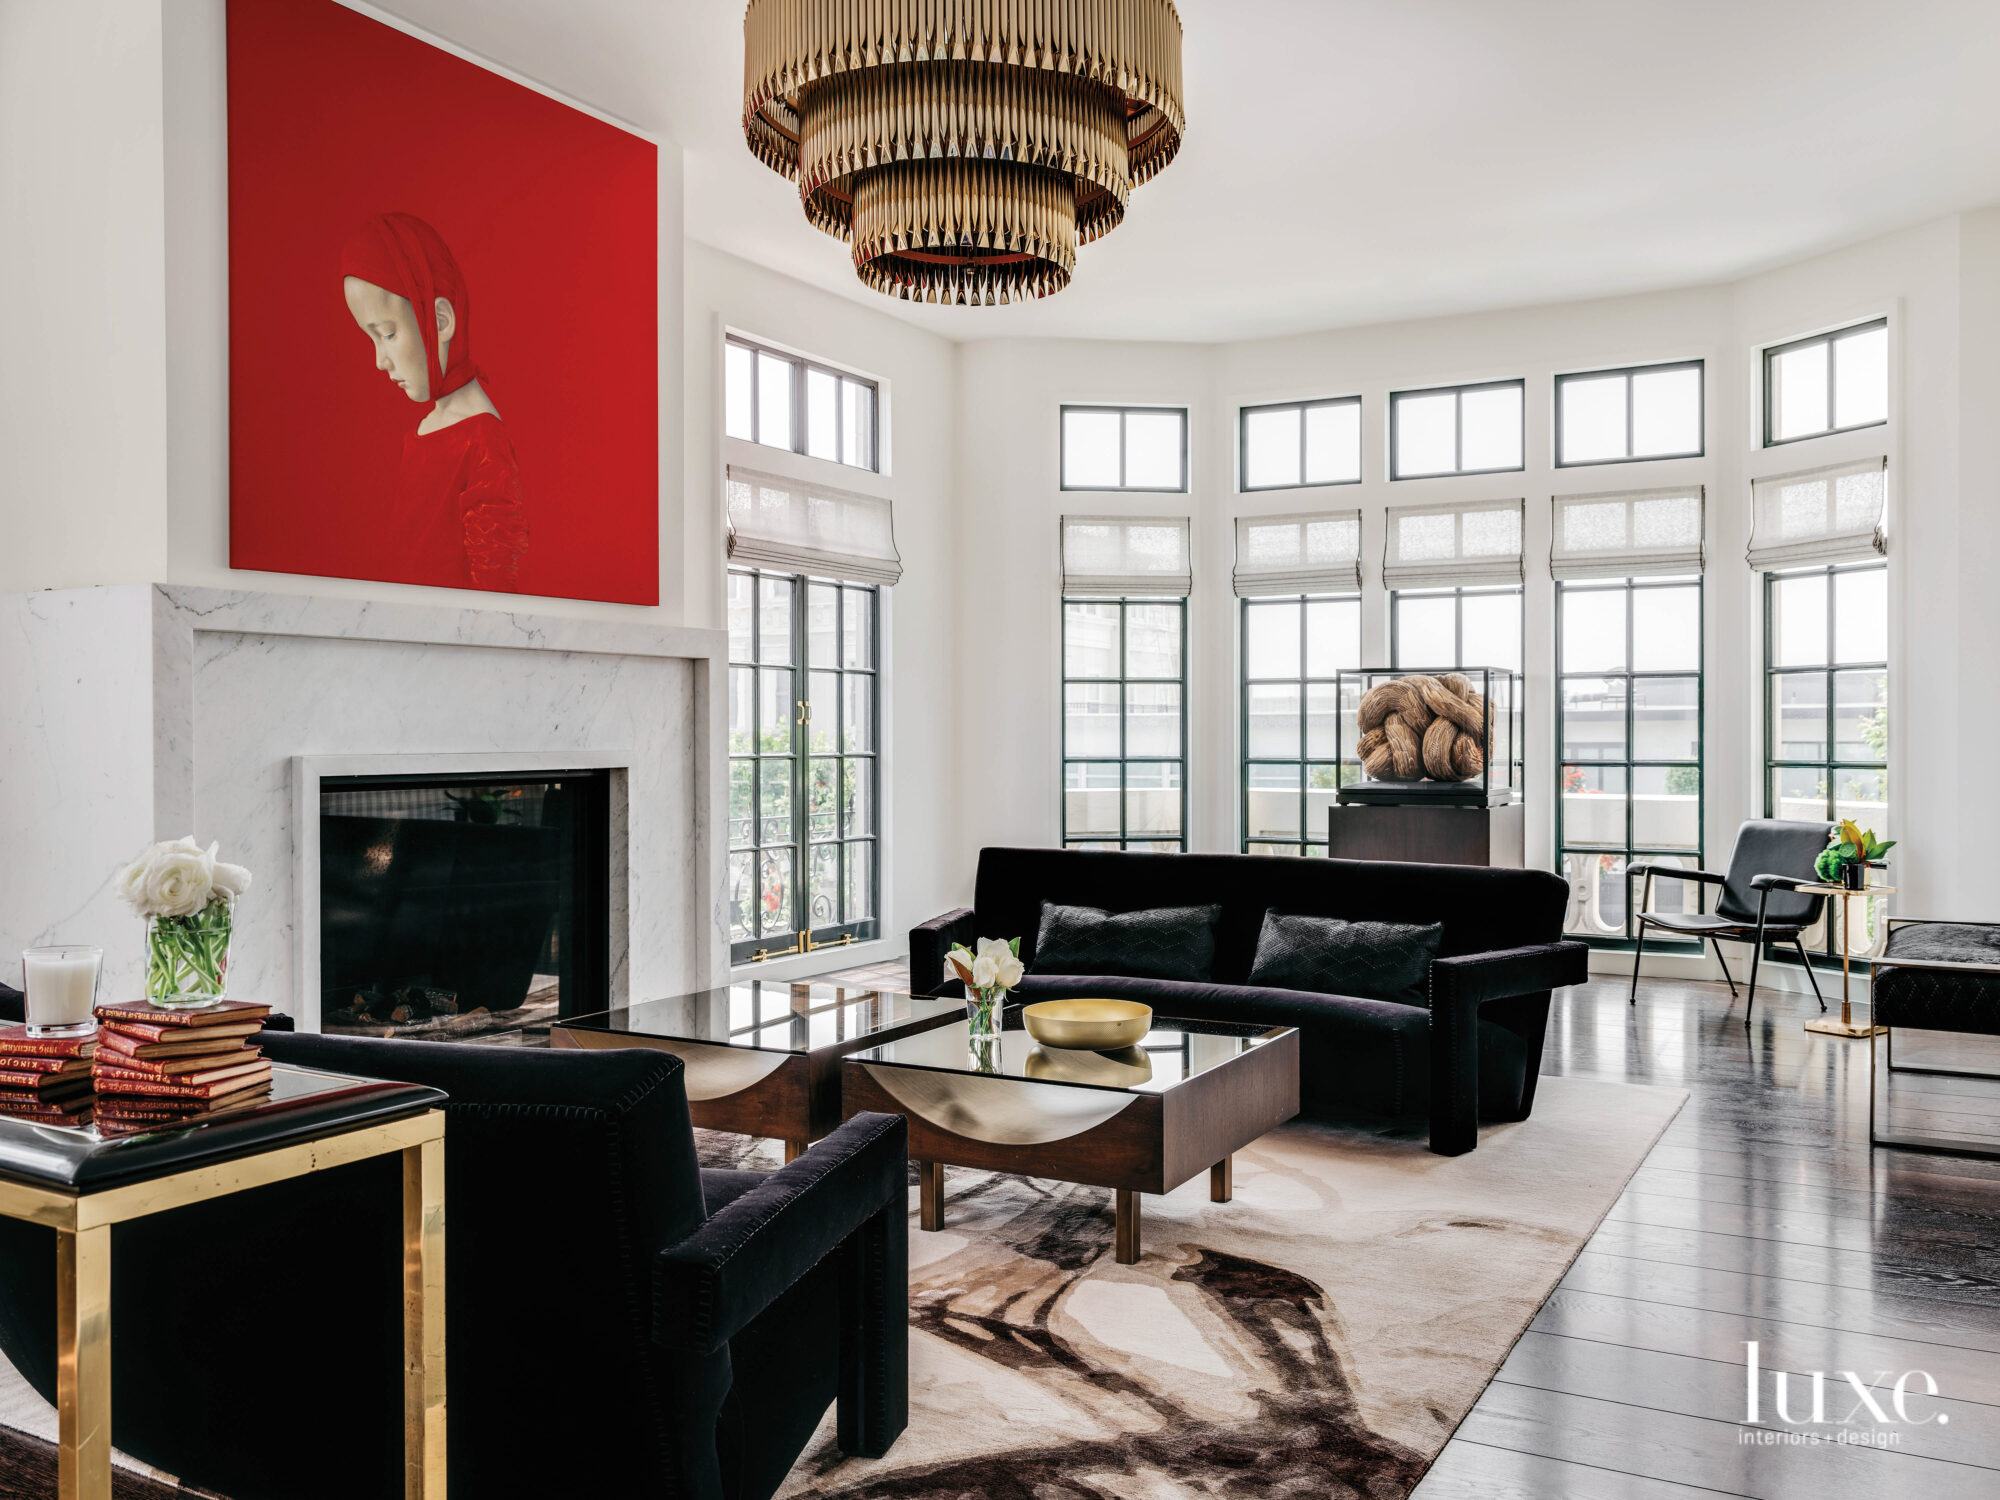 A living room is done in black and white tones with an artwork adding a splash of red.